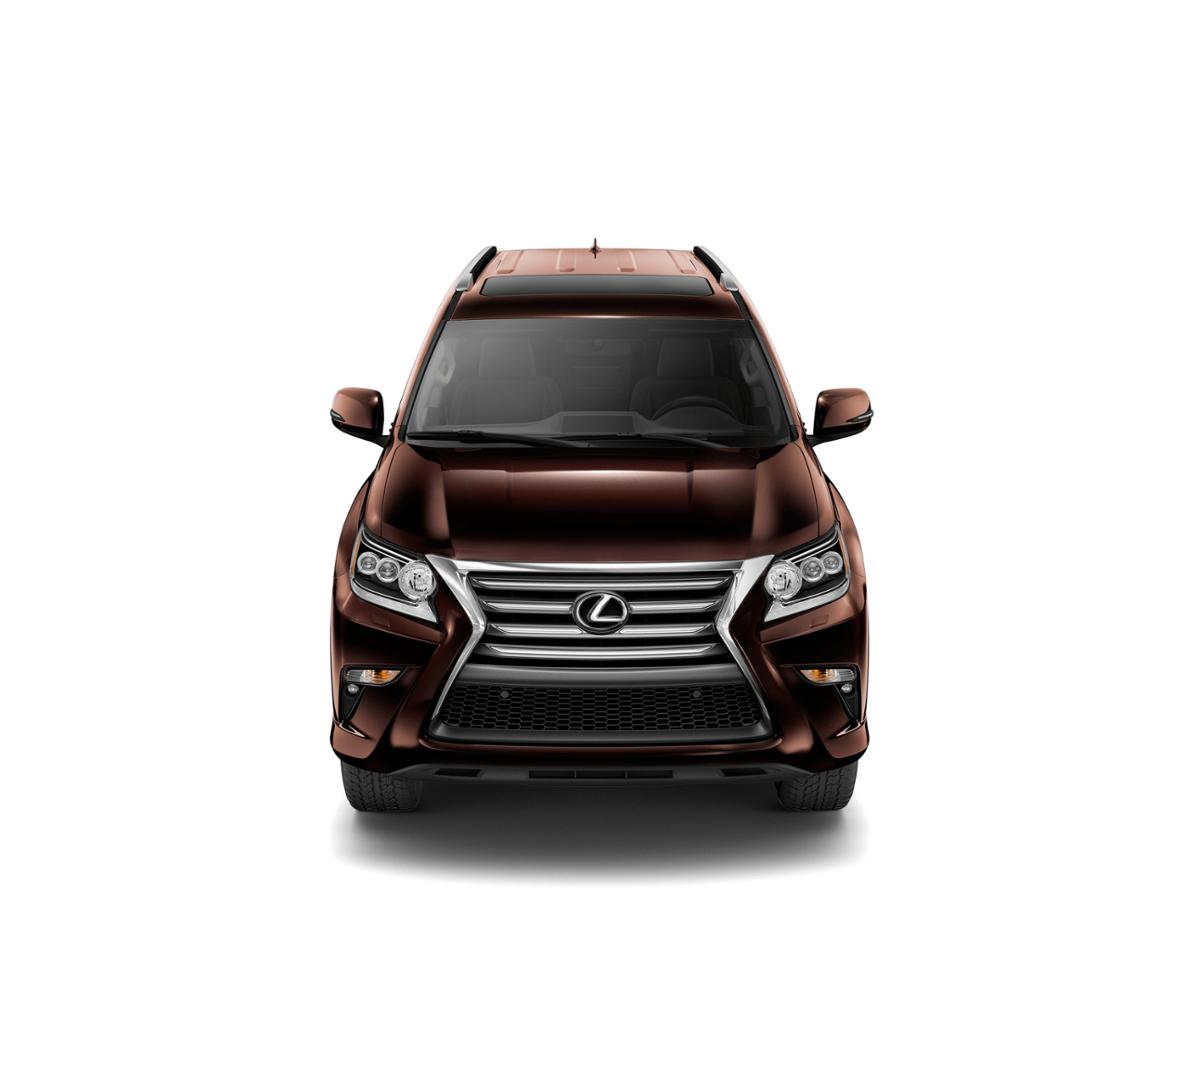 2017 lexus gx 460 cincinnati oh performance lexus h5174800. Black Bedroom Furniture Sets. Home Design Ideas